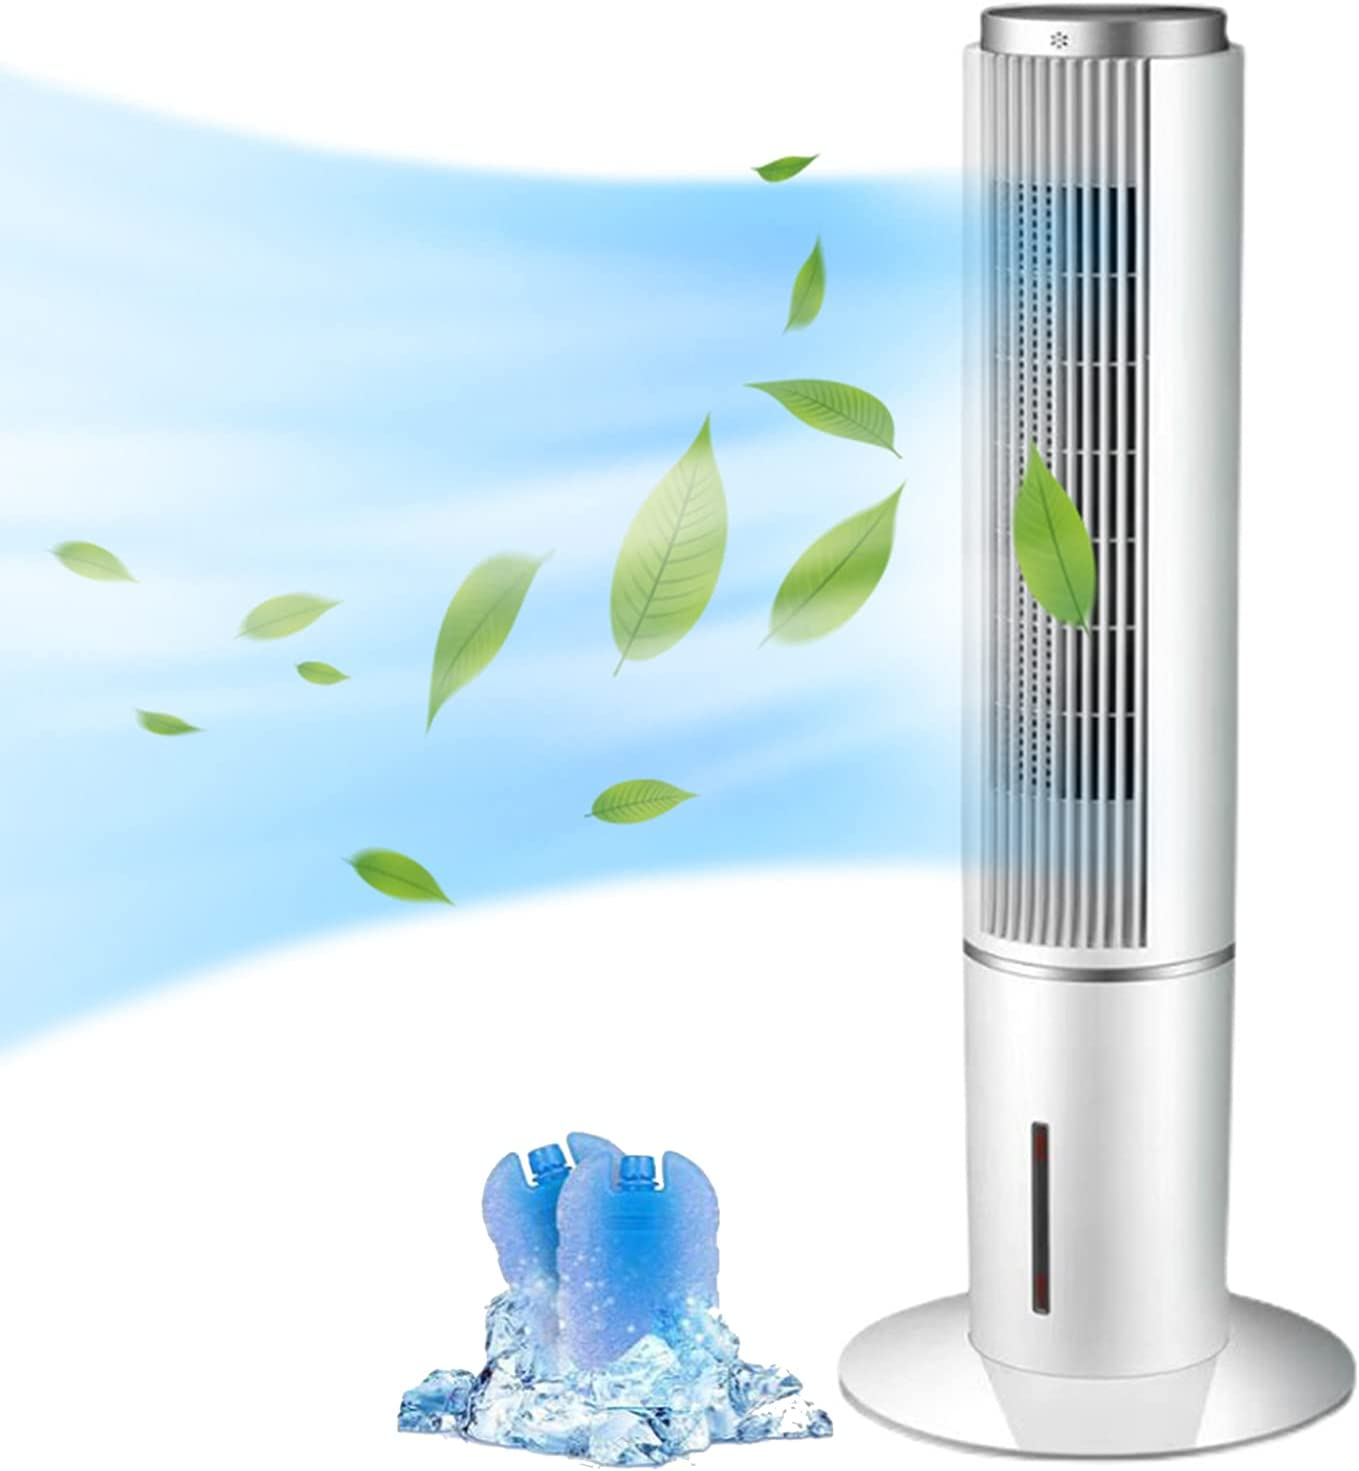 Detroit Mall SHPEHP 41.7-inch Oscillating Tower Fan 2021 with 80W M Ultra-Powerful